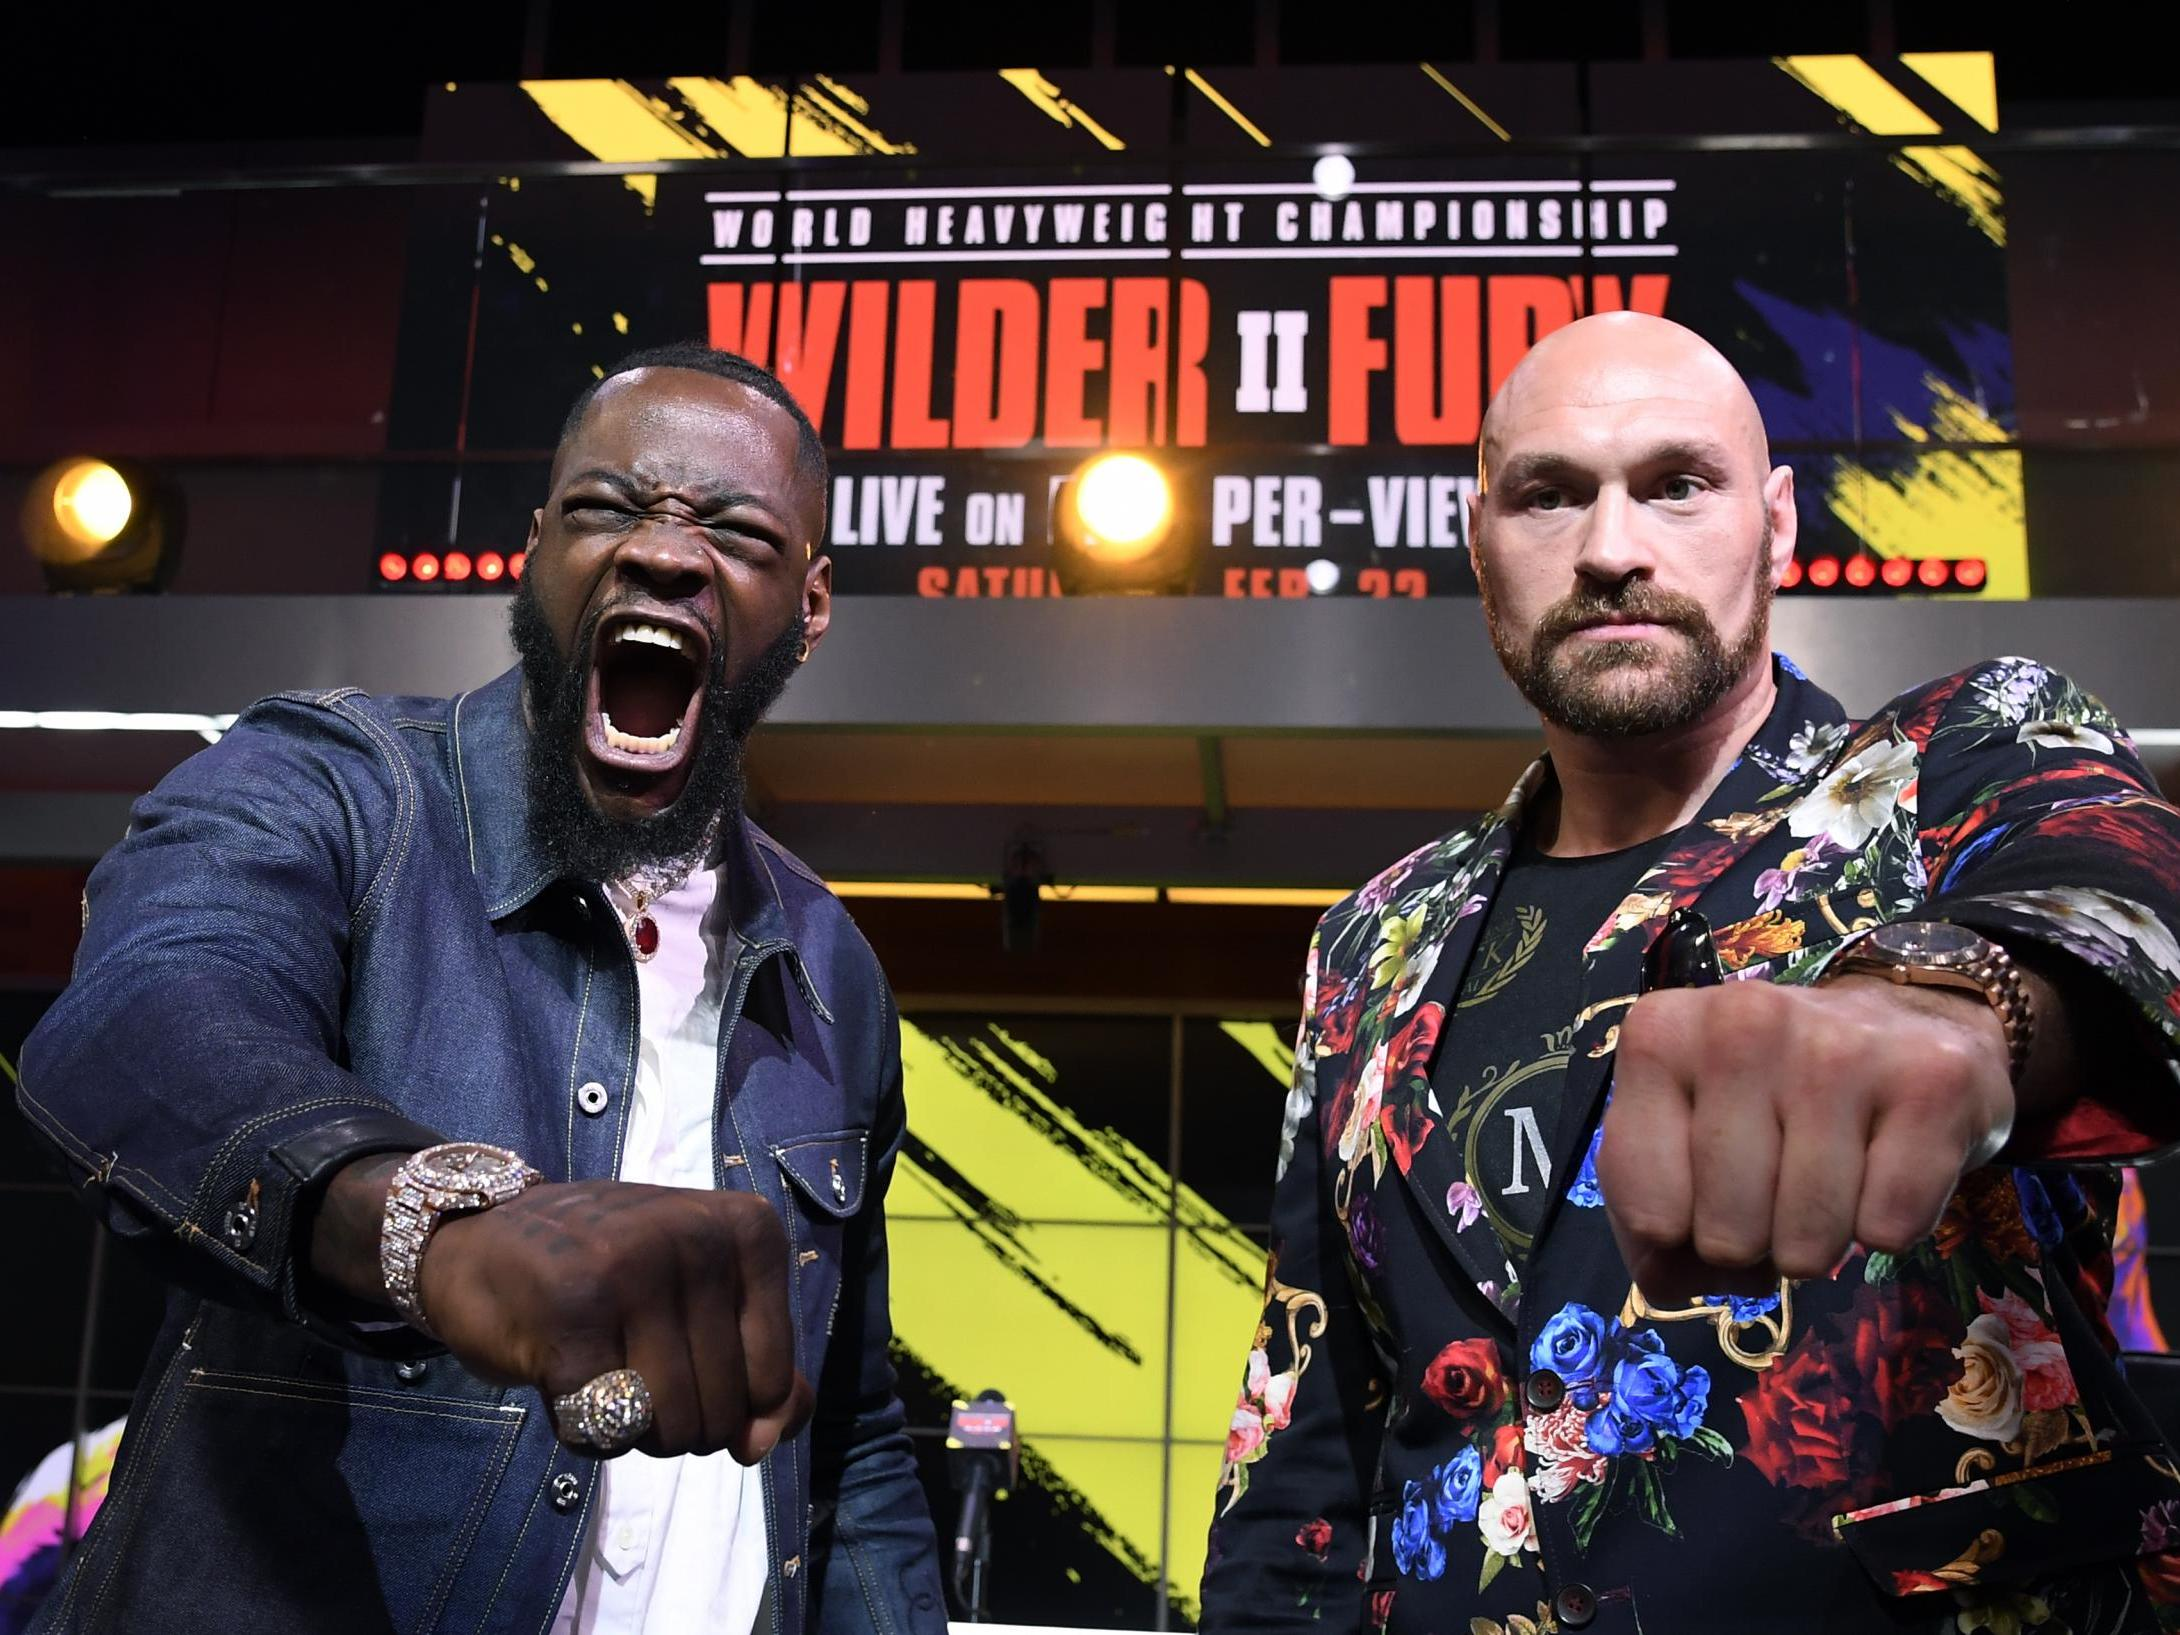 Why Wilder vs Fury is the perfect fight and how complacency will settle it